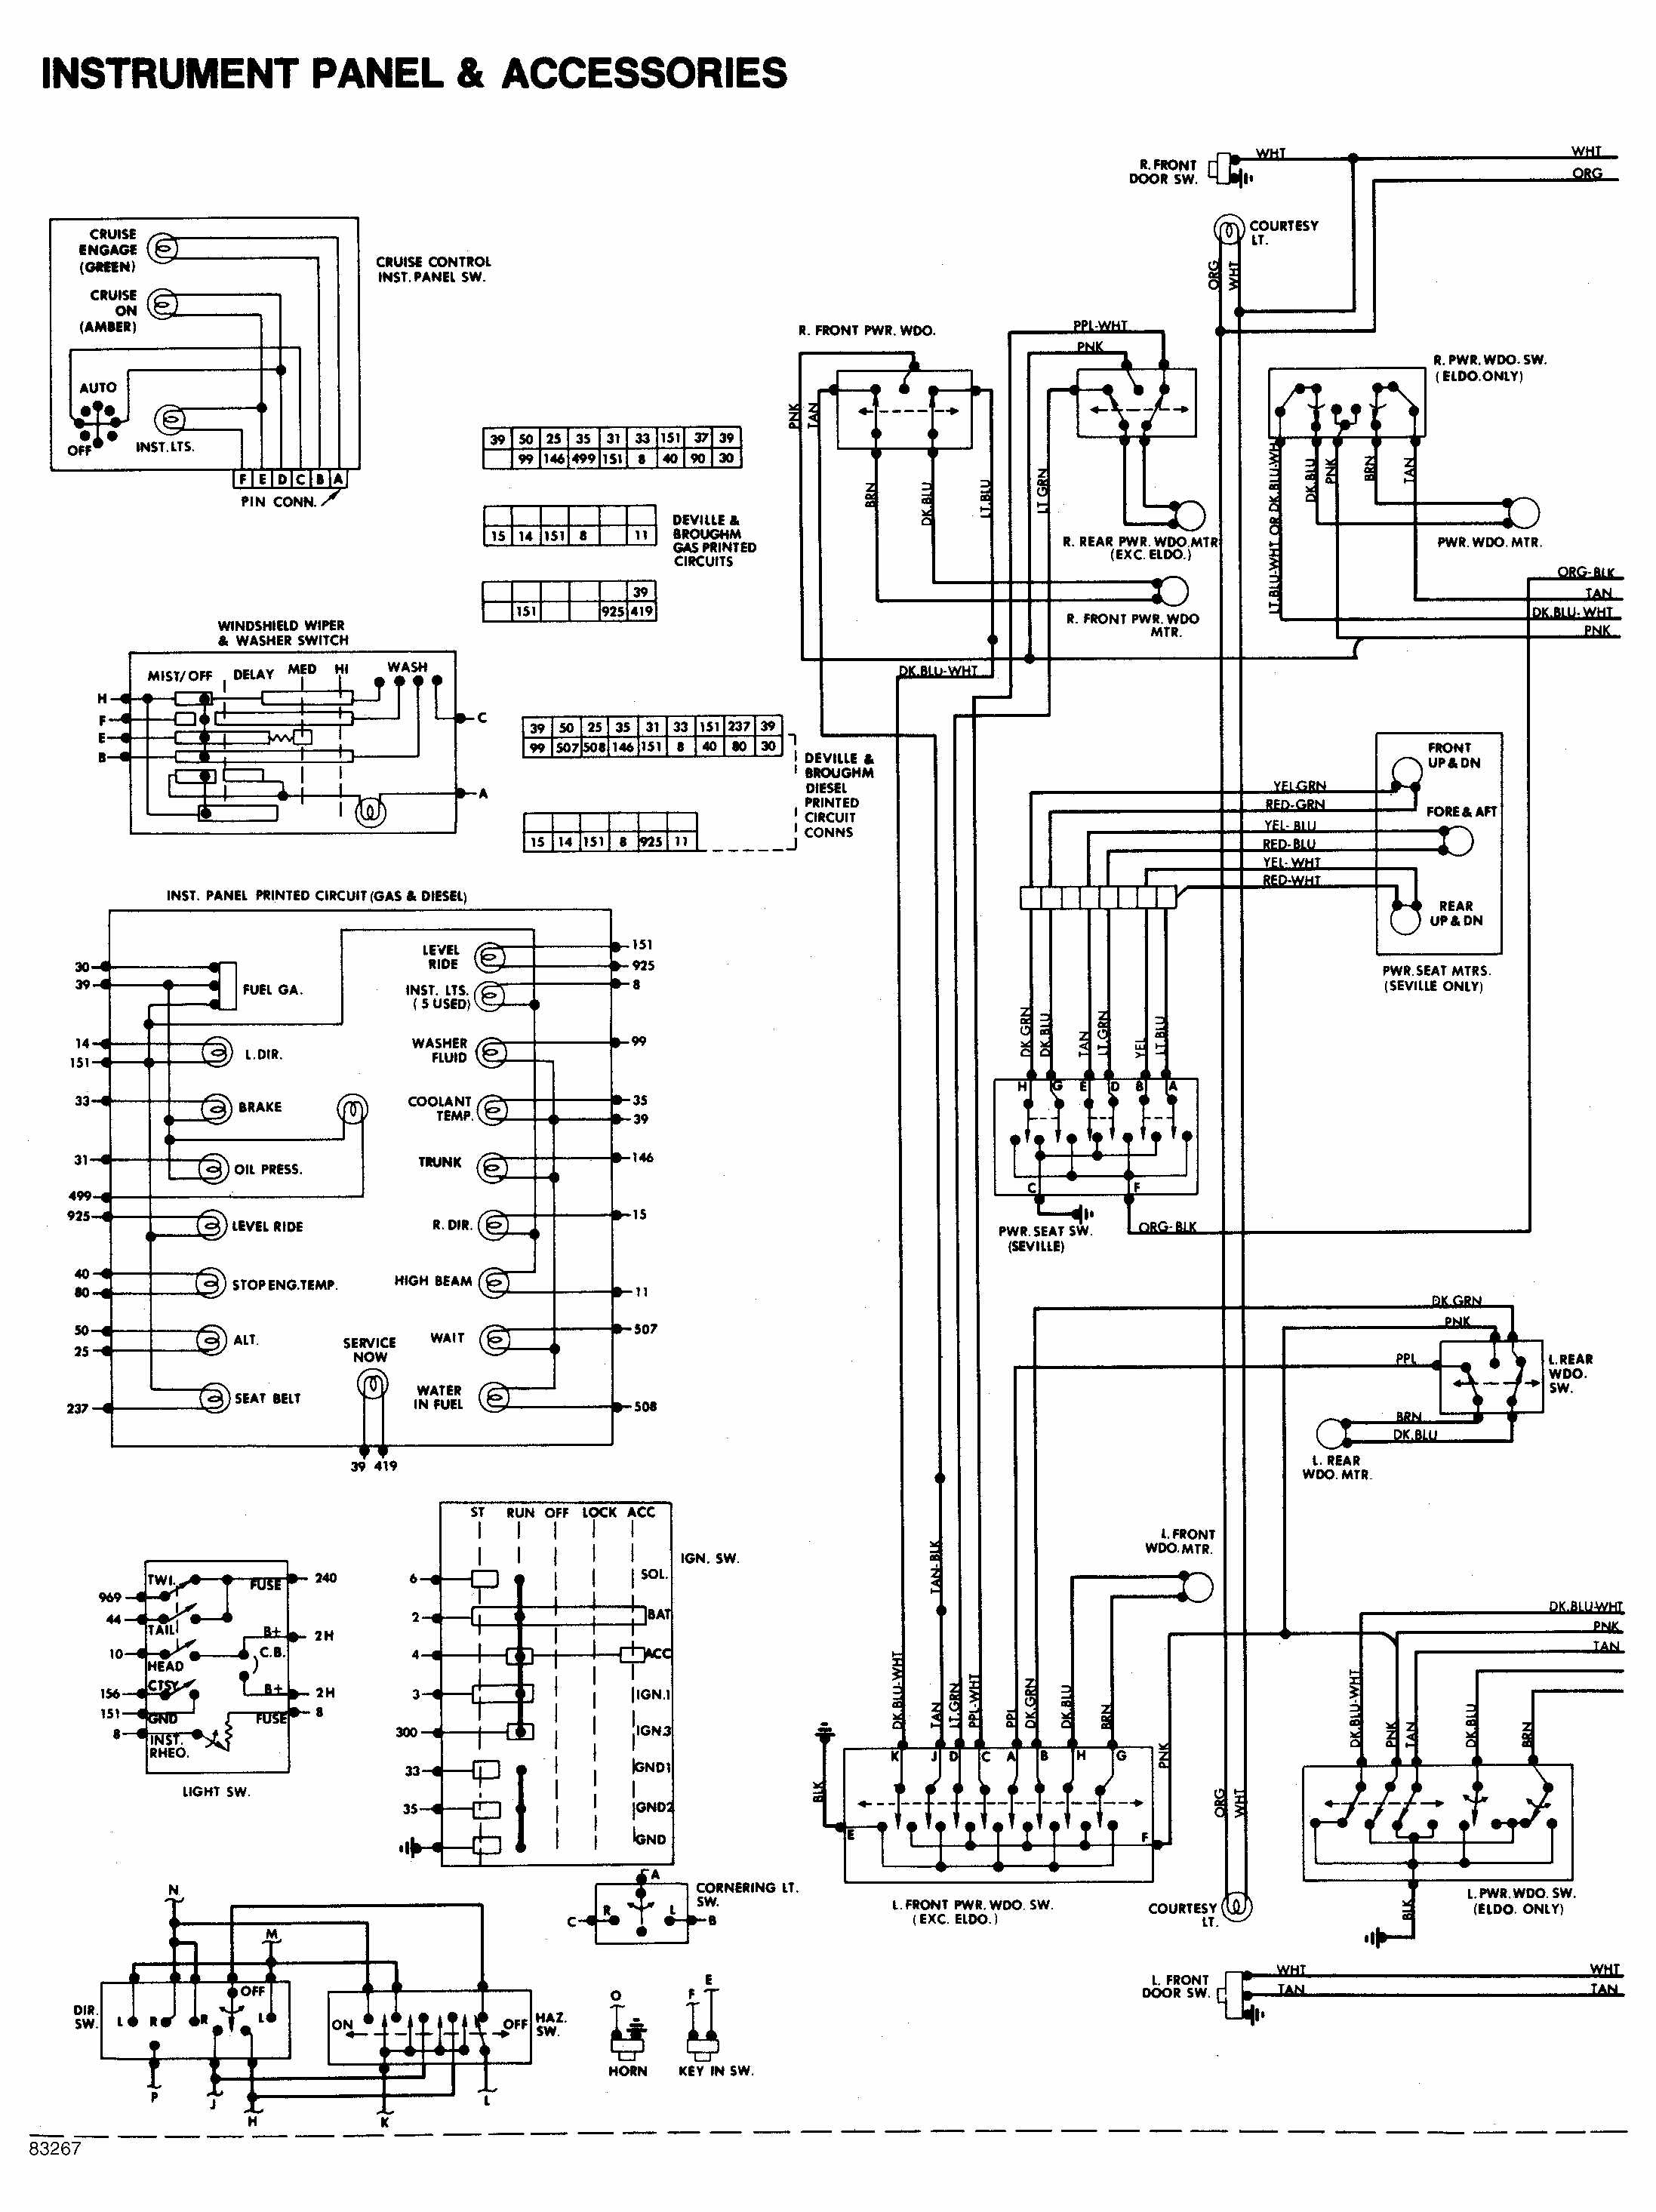 1984 Chevy Truck Ignition Wiring Diagram Electricity 84 Silverado Gm Anything Diagrams U2022 Rh Flowhq Co 1971 Pickup